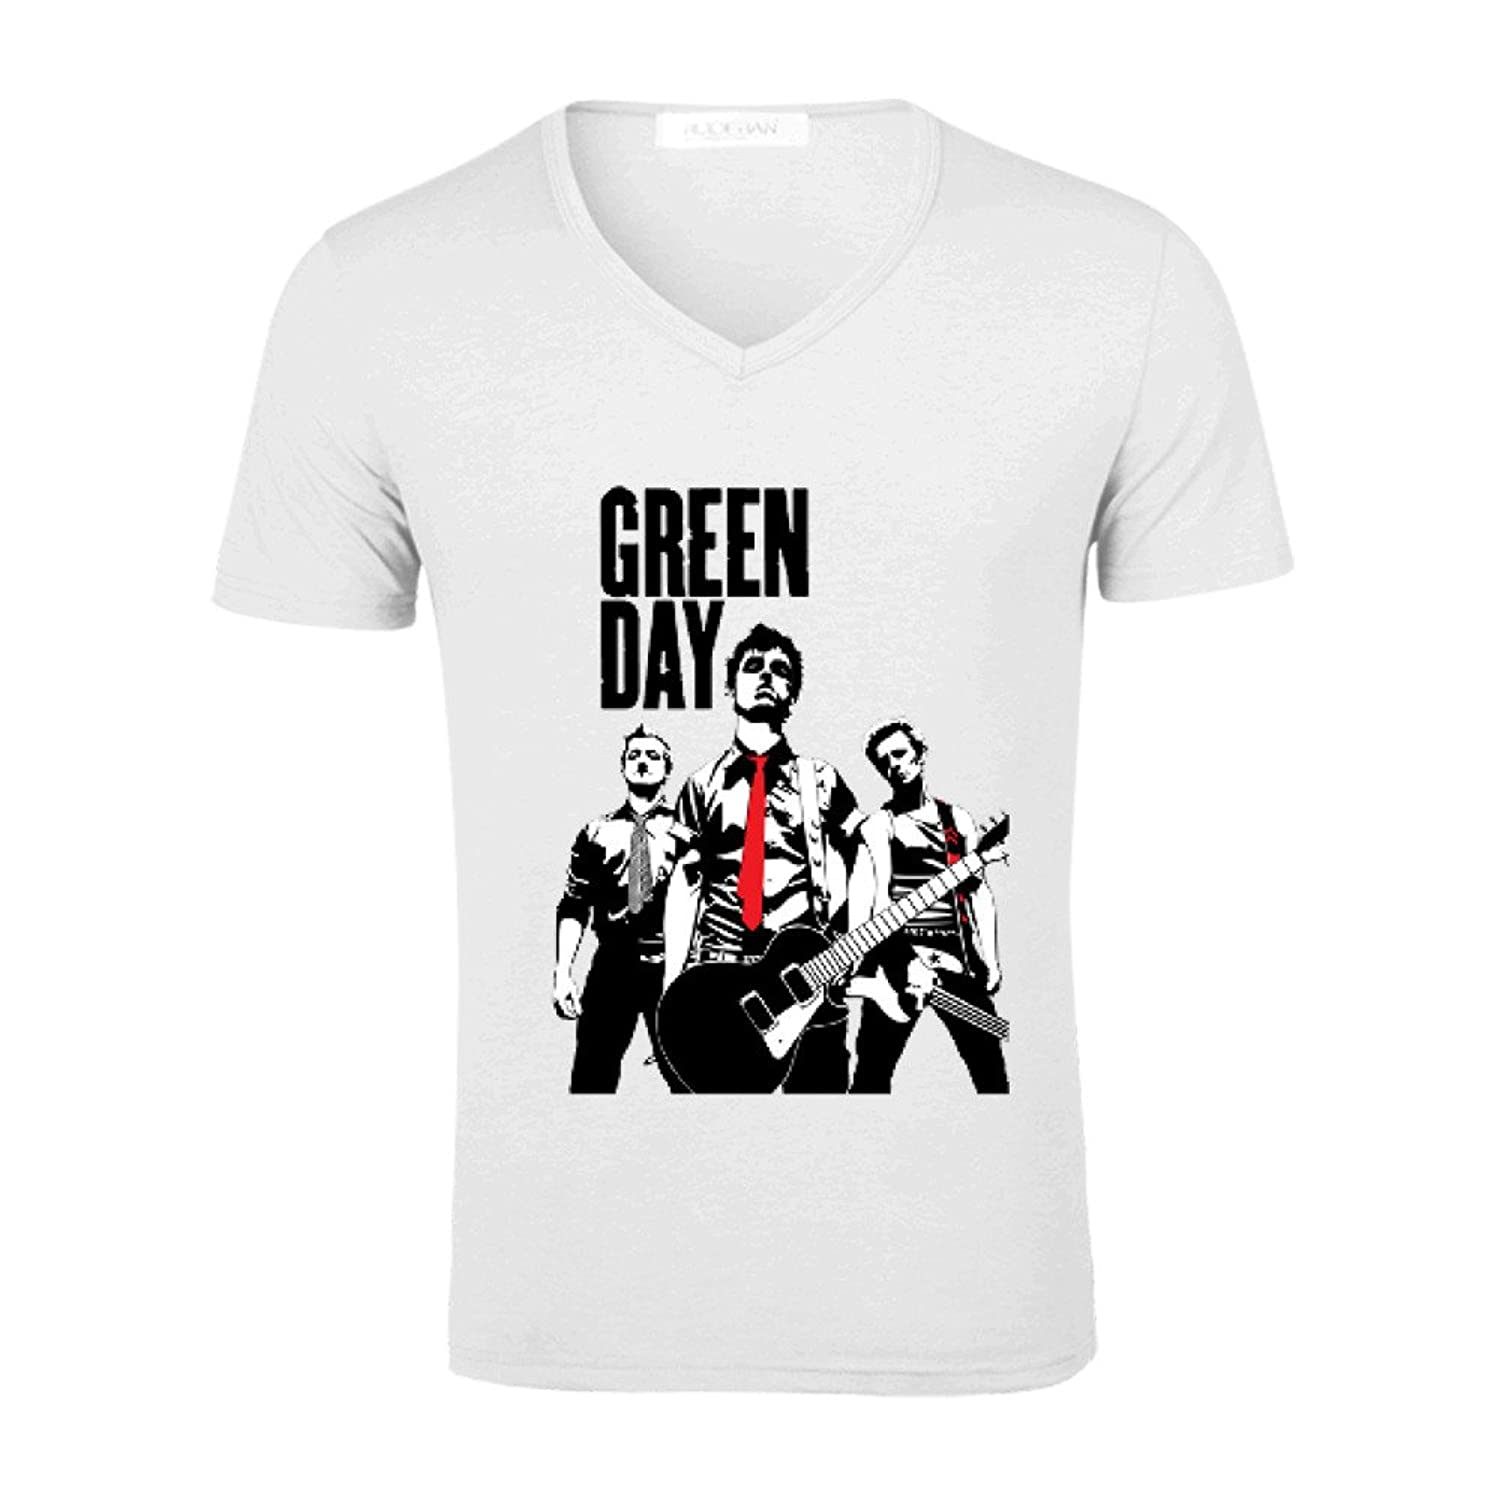 TooWest Great Band Green Day V Neck Cotton Tee Shirt